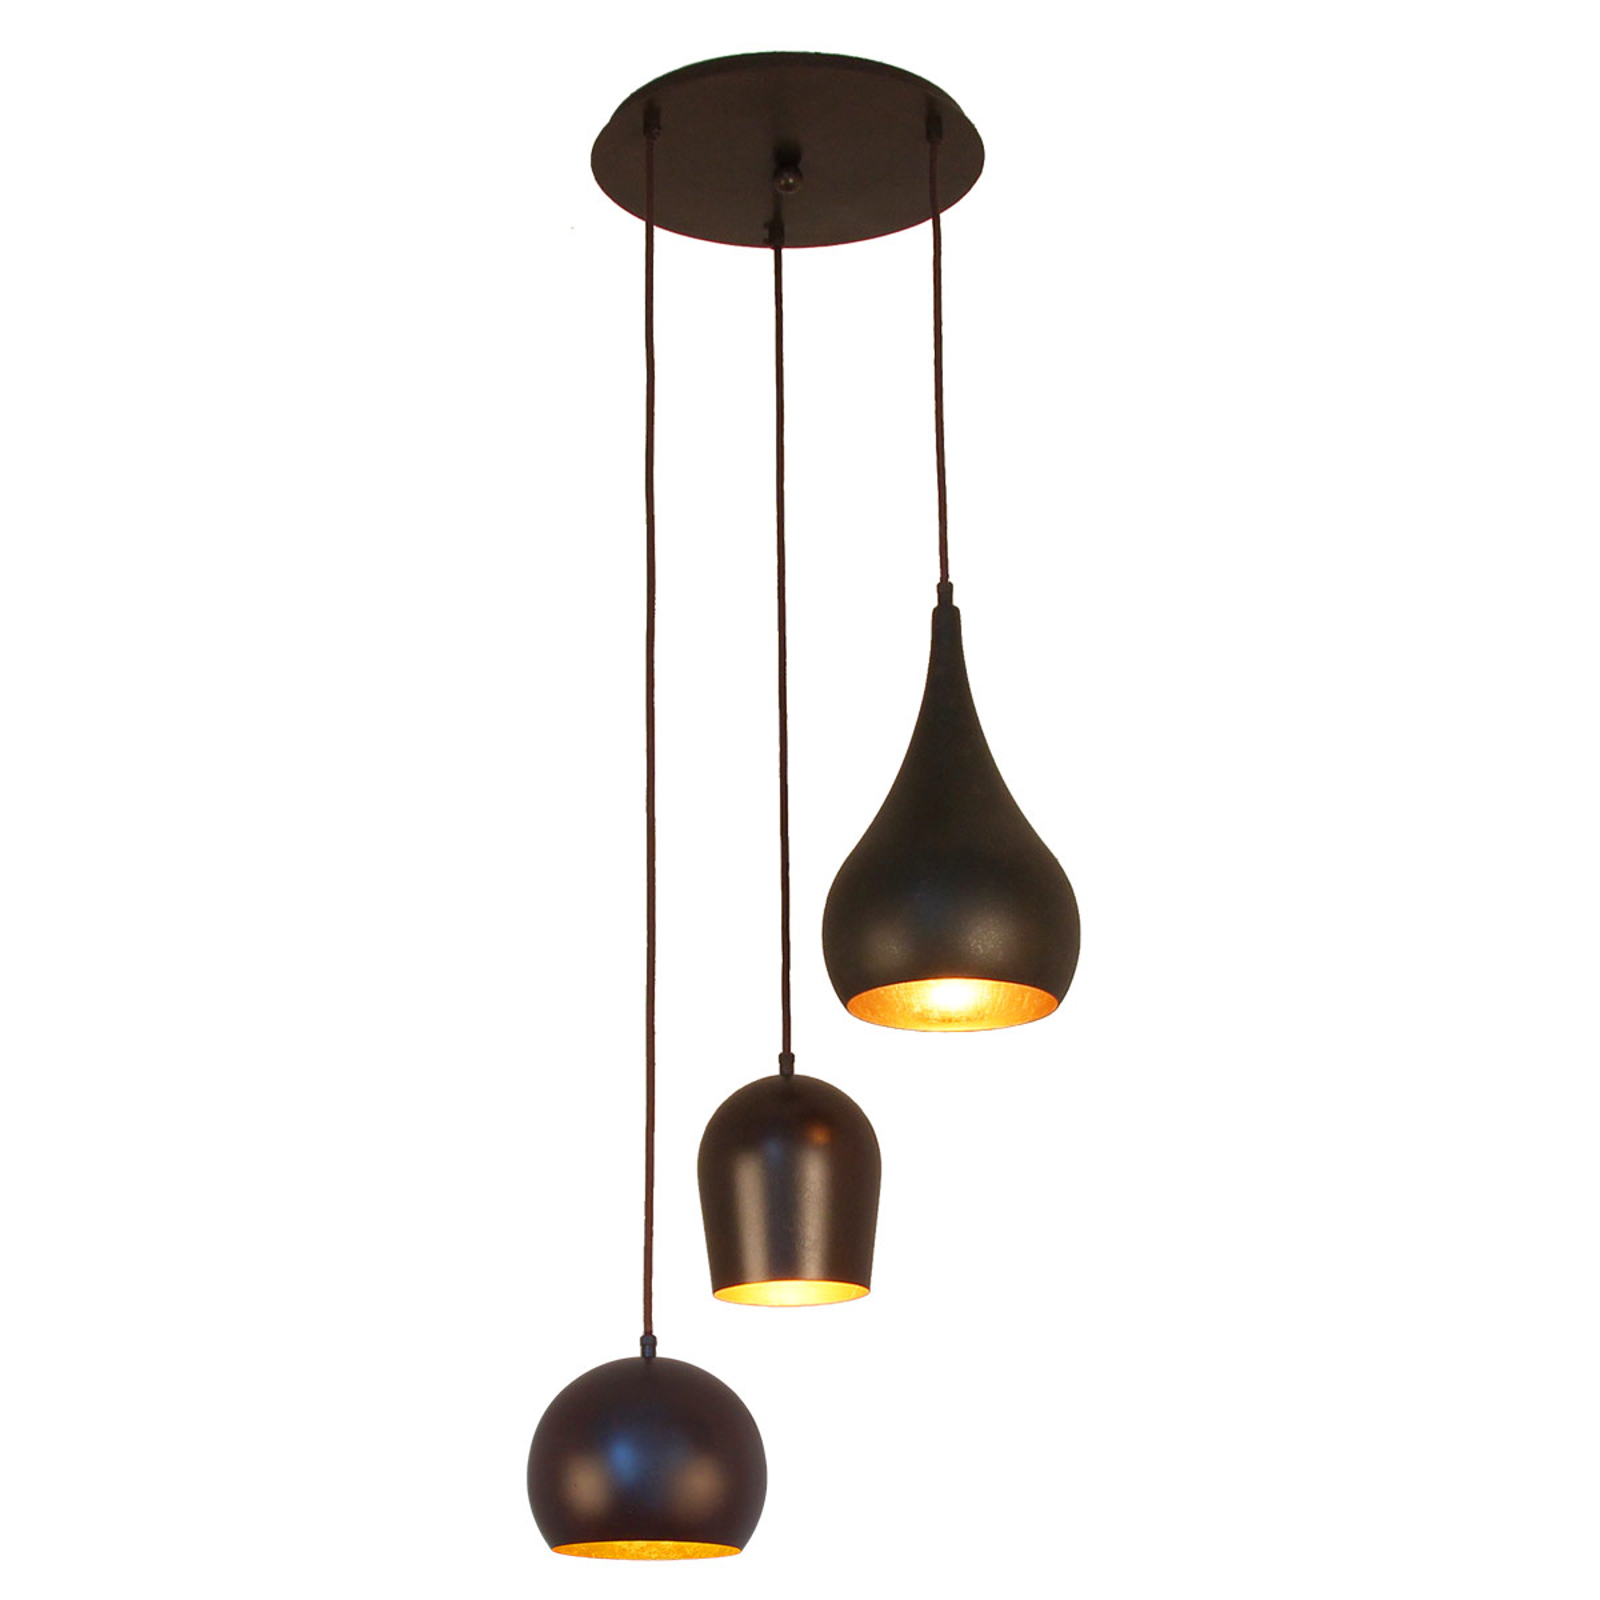 Menzel Solo hanglamp, 3-lamps rond